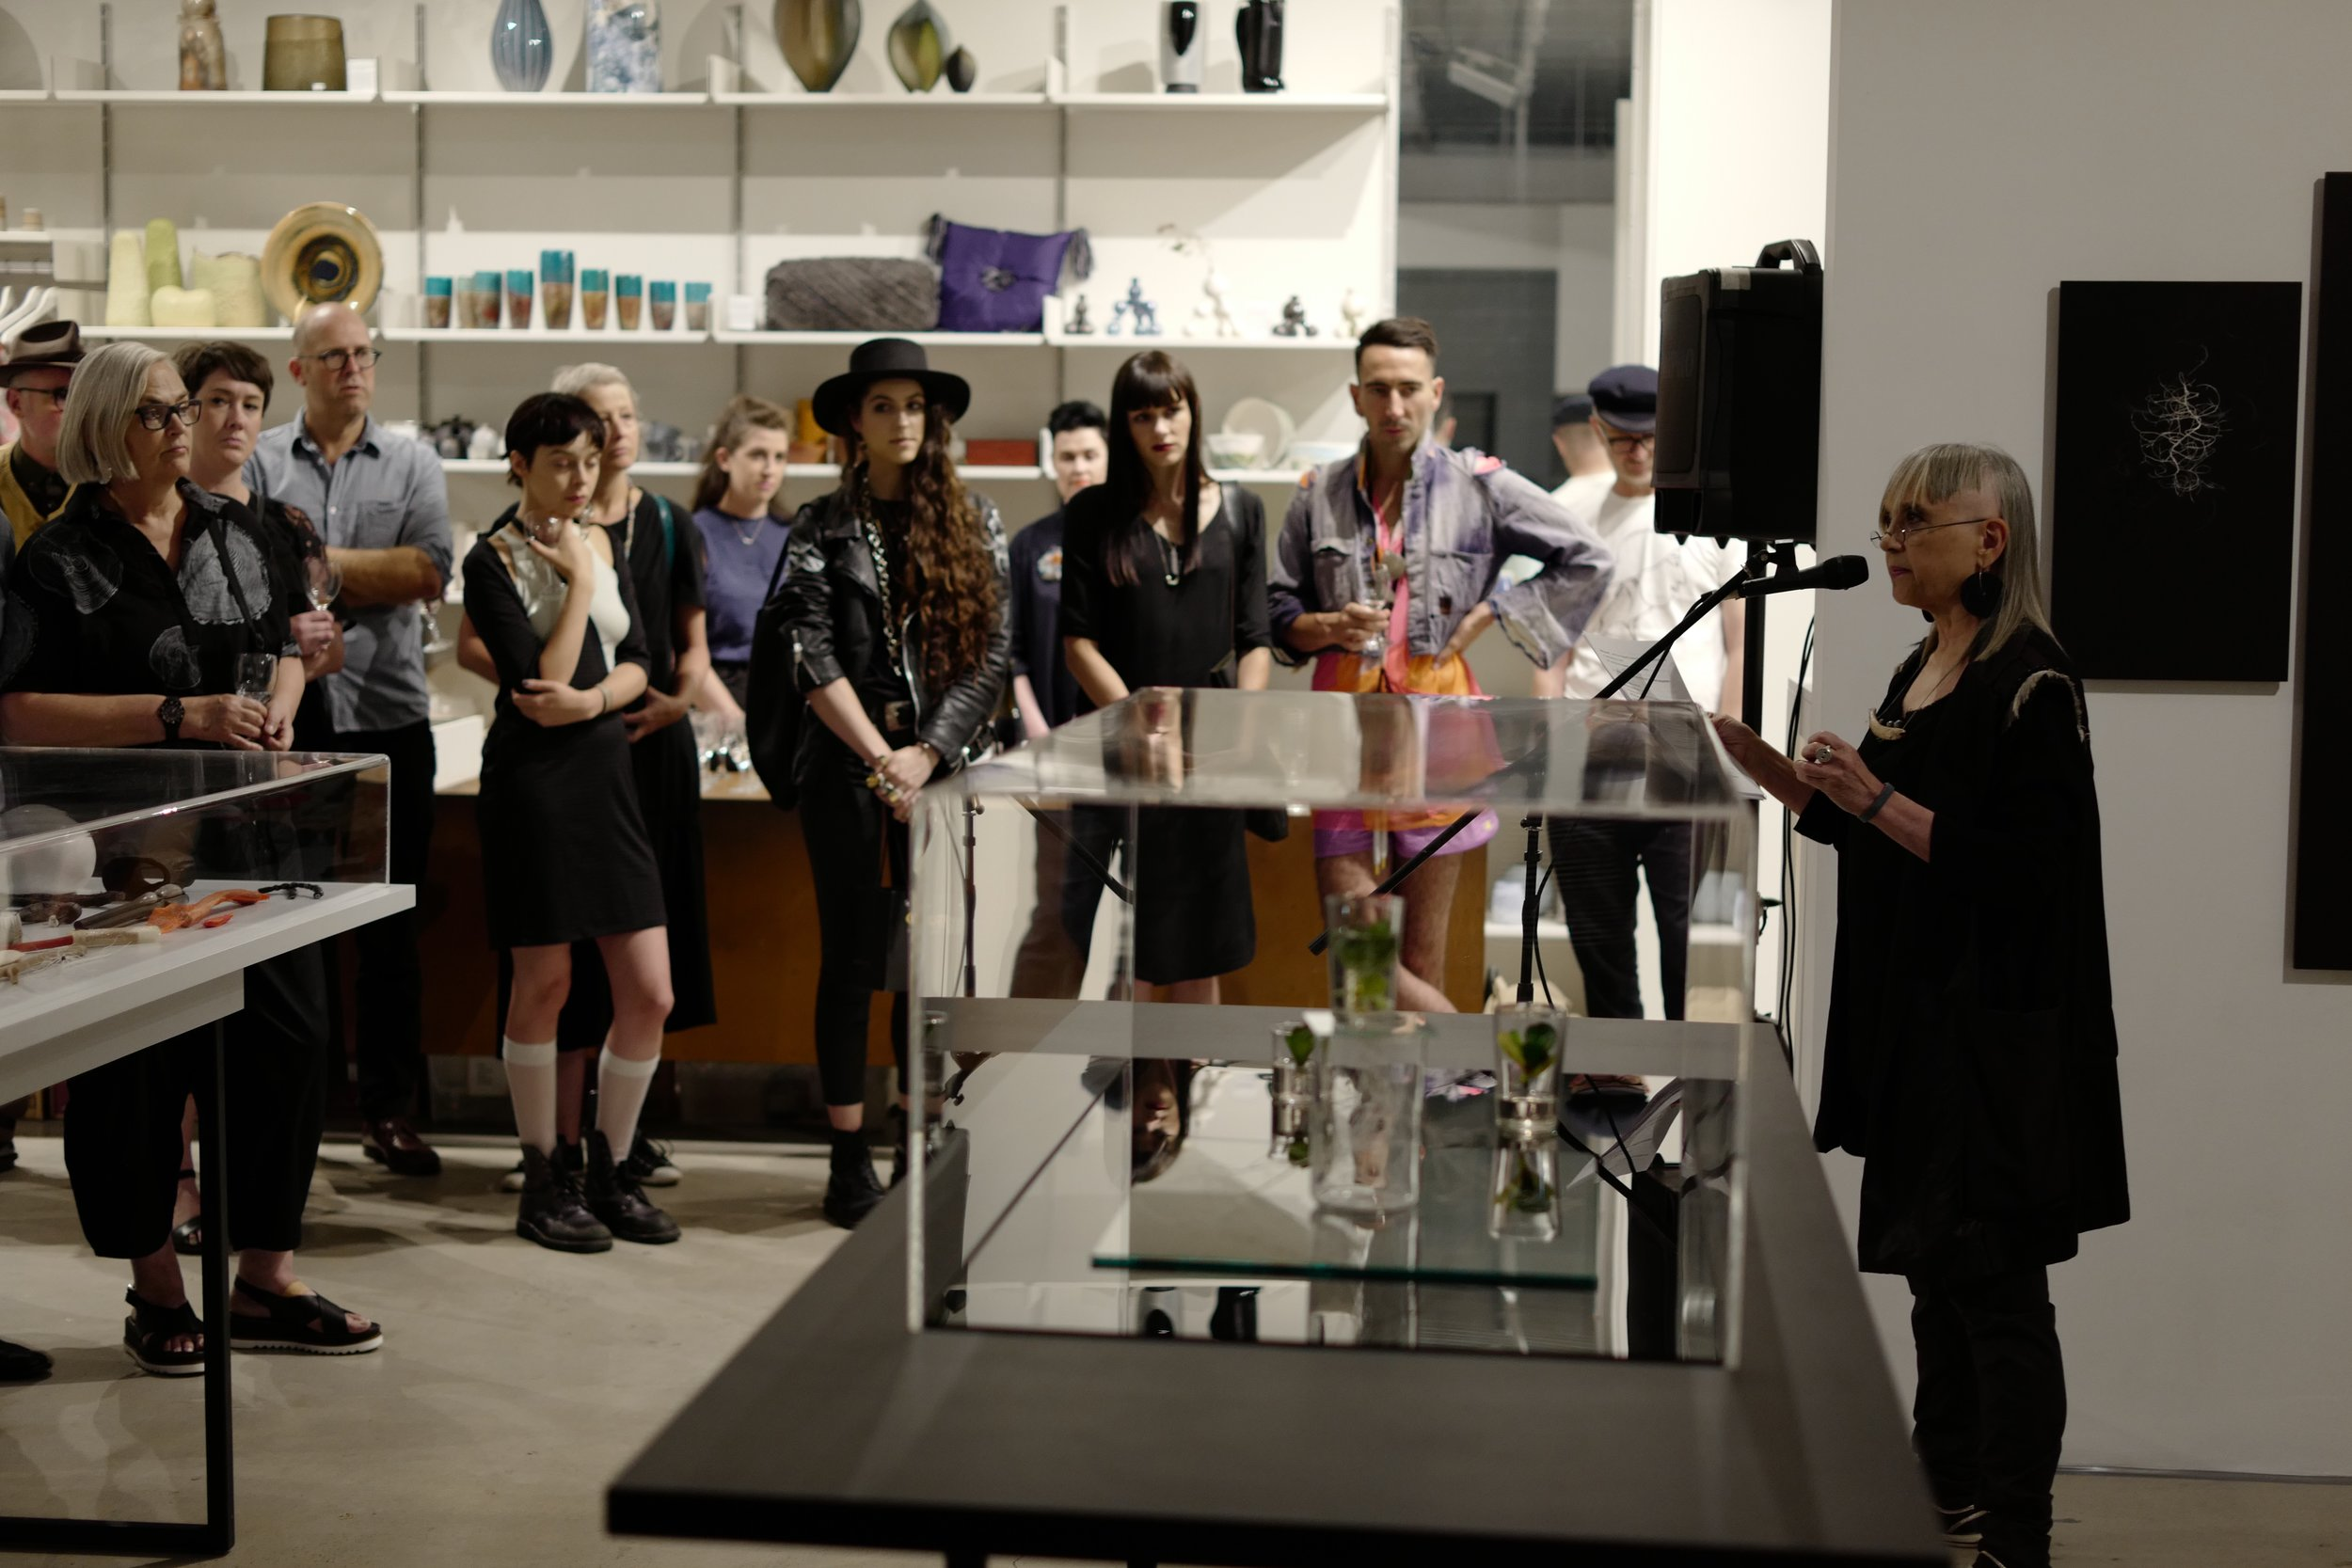 Craft Victoria_Catherine Truman_No surface holds_2019_Opening event_Photography Thomas Lentini_L1080945.jpg